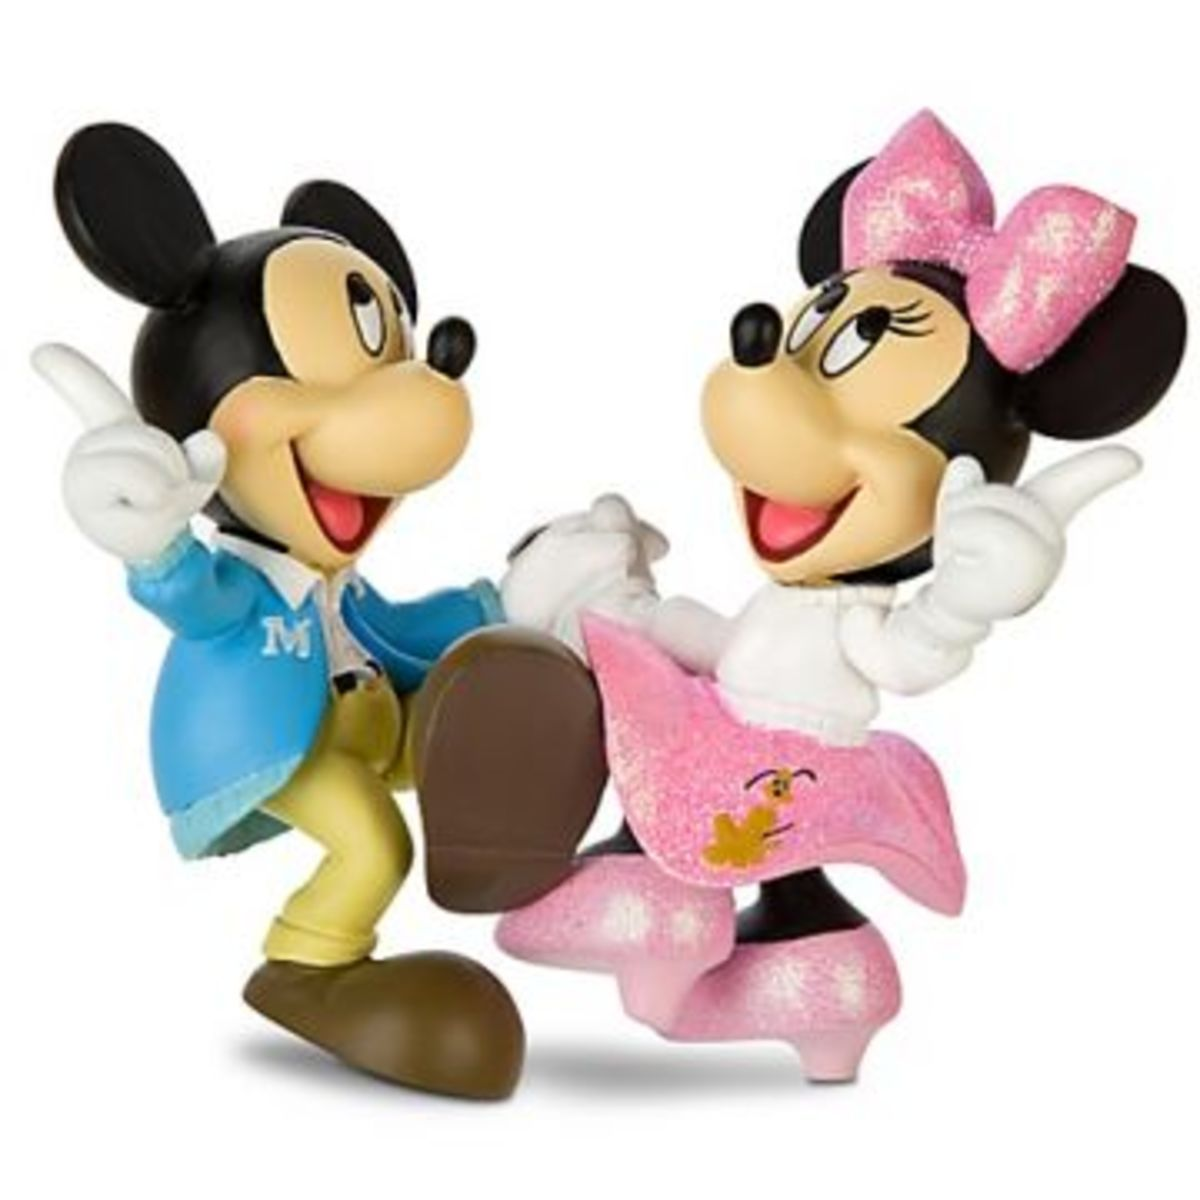 Even Mickey and Minnie can't resist the Jitterbug